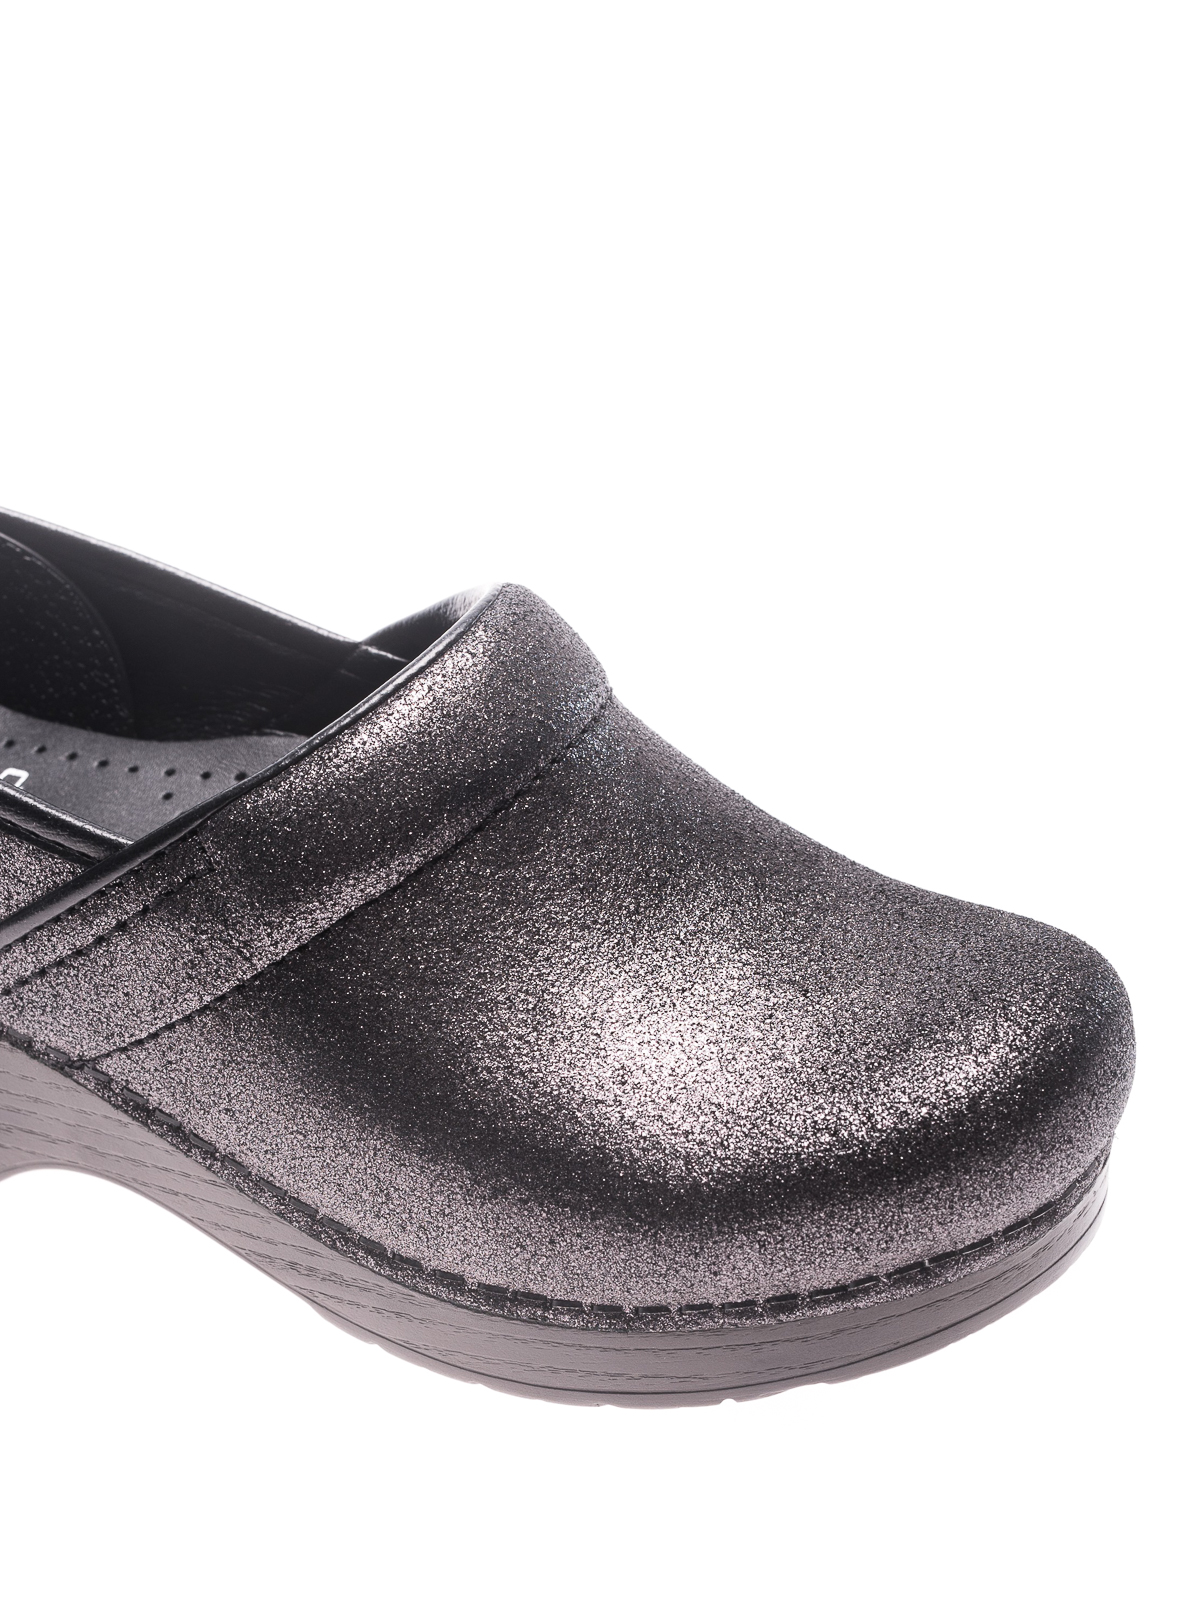 metallic suede clogs - mules shoes